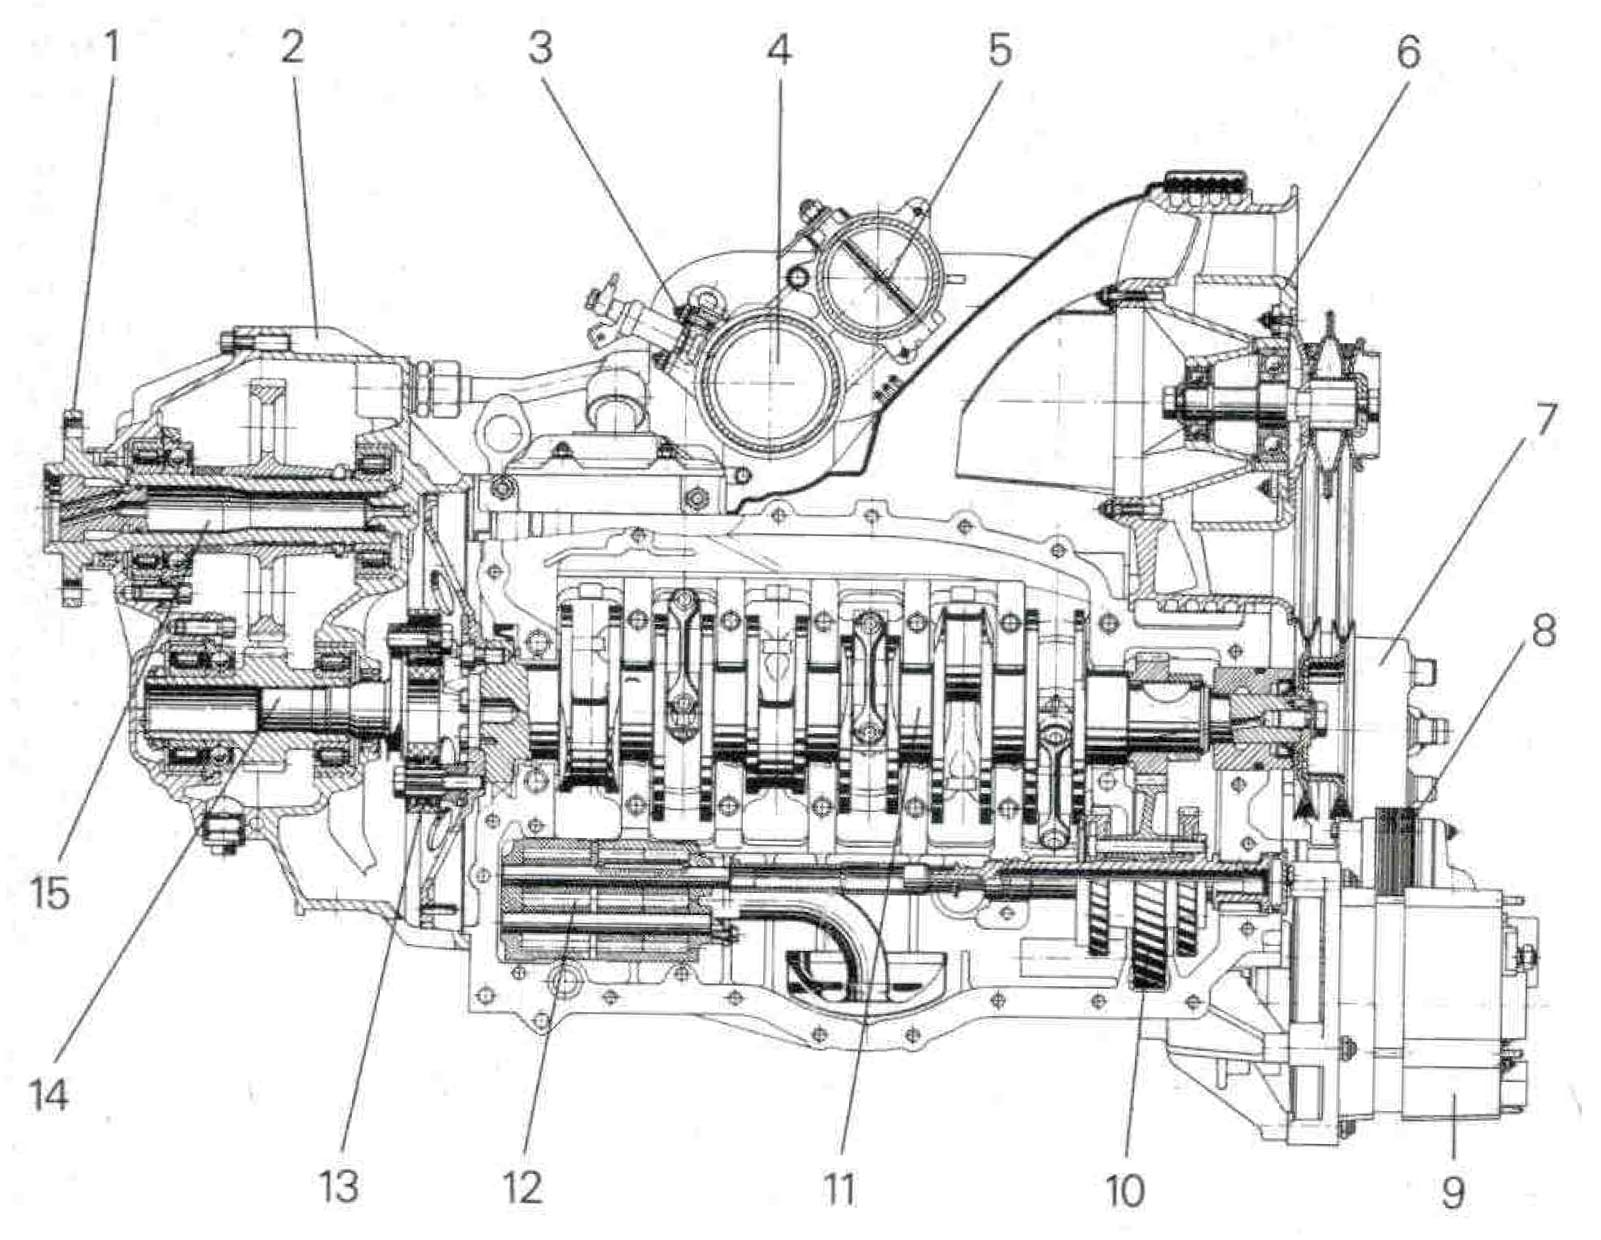 PFM 3200 Engine